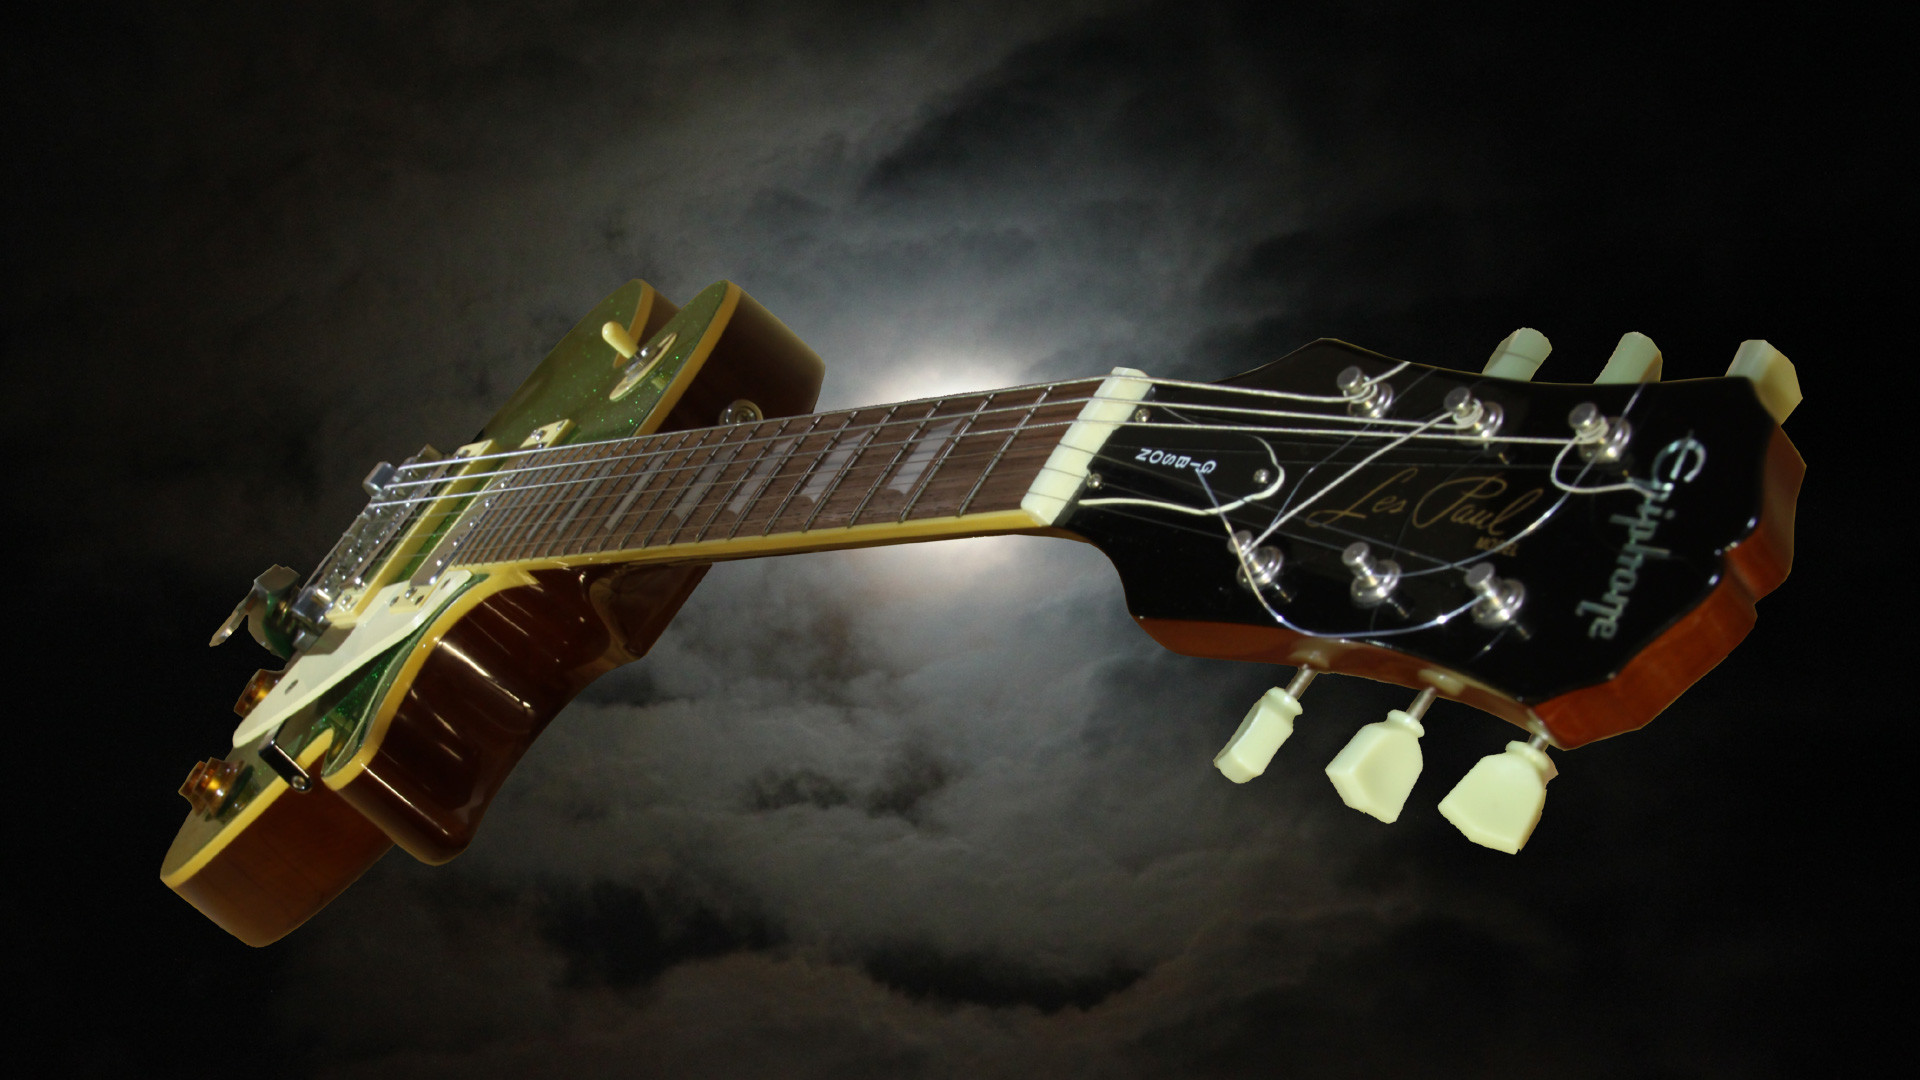 819443 HD Gibson Guitar Wallpapers and Photos | HD Music Wallpapers .